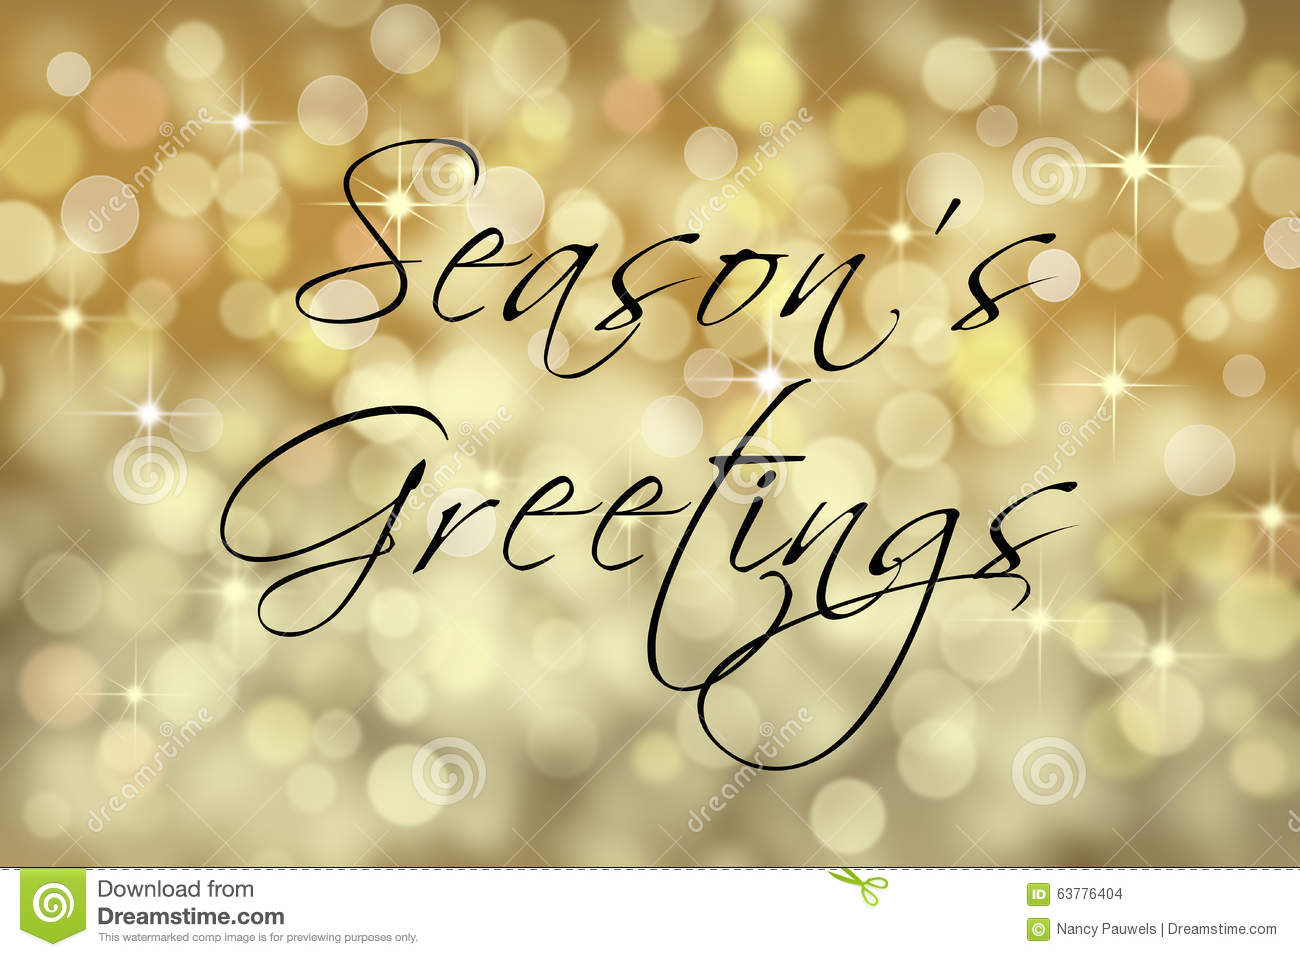 Seasons greetings text card with bokeh background stock photo seasons greetings text card with bokeh background m4hsunfo